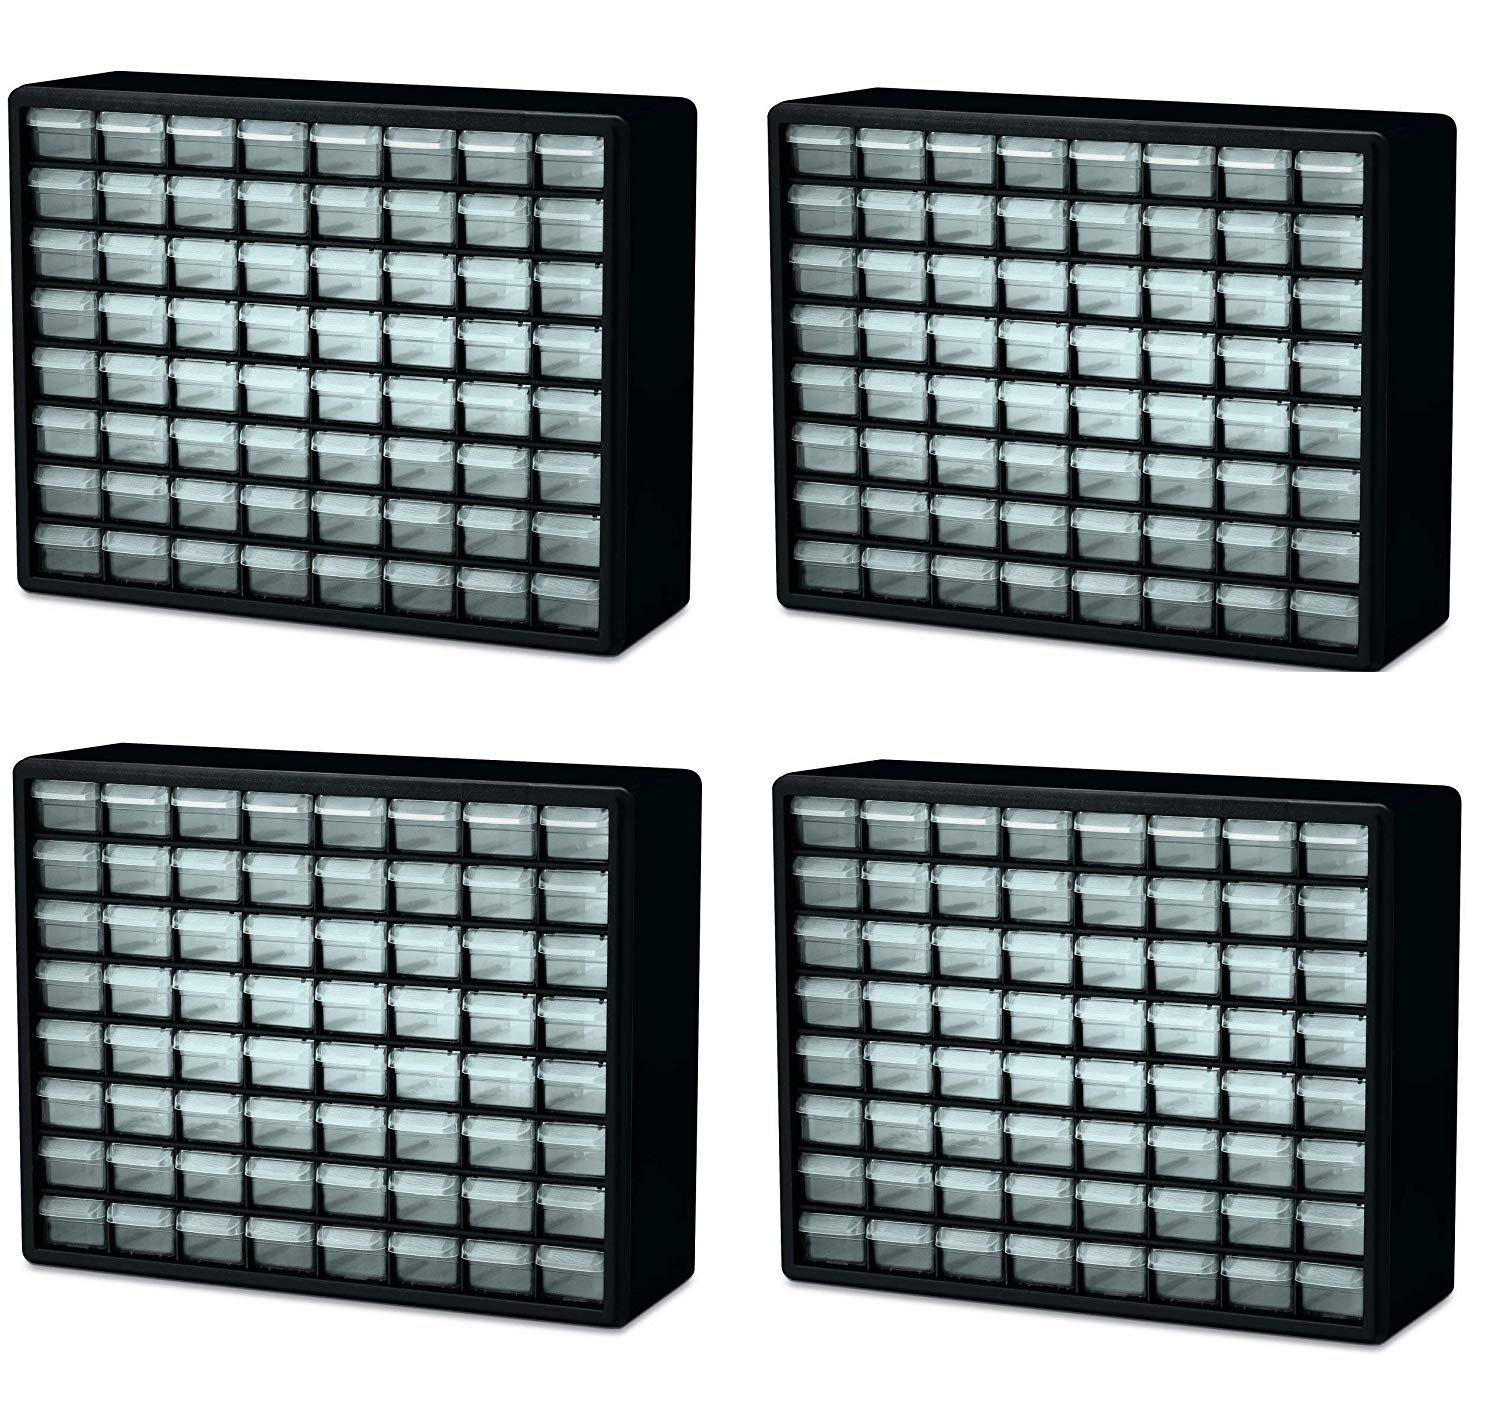 Akro-Mils 10164 64 Drawer Plastic Parts Storage Hardware and Craft Cabinet, 20-Inch by 16-Inch by 6-1/2-Inch, Black (Pack of 4)